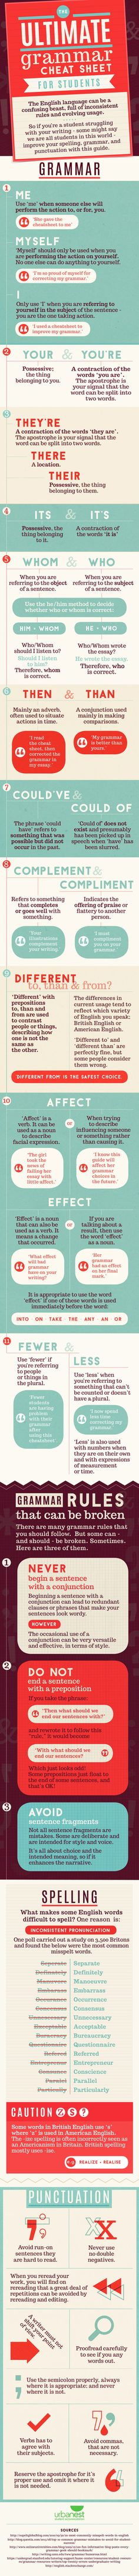 Ultimate English Grammar Cheat Sheet For Students - Tipsögraphic